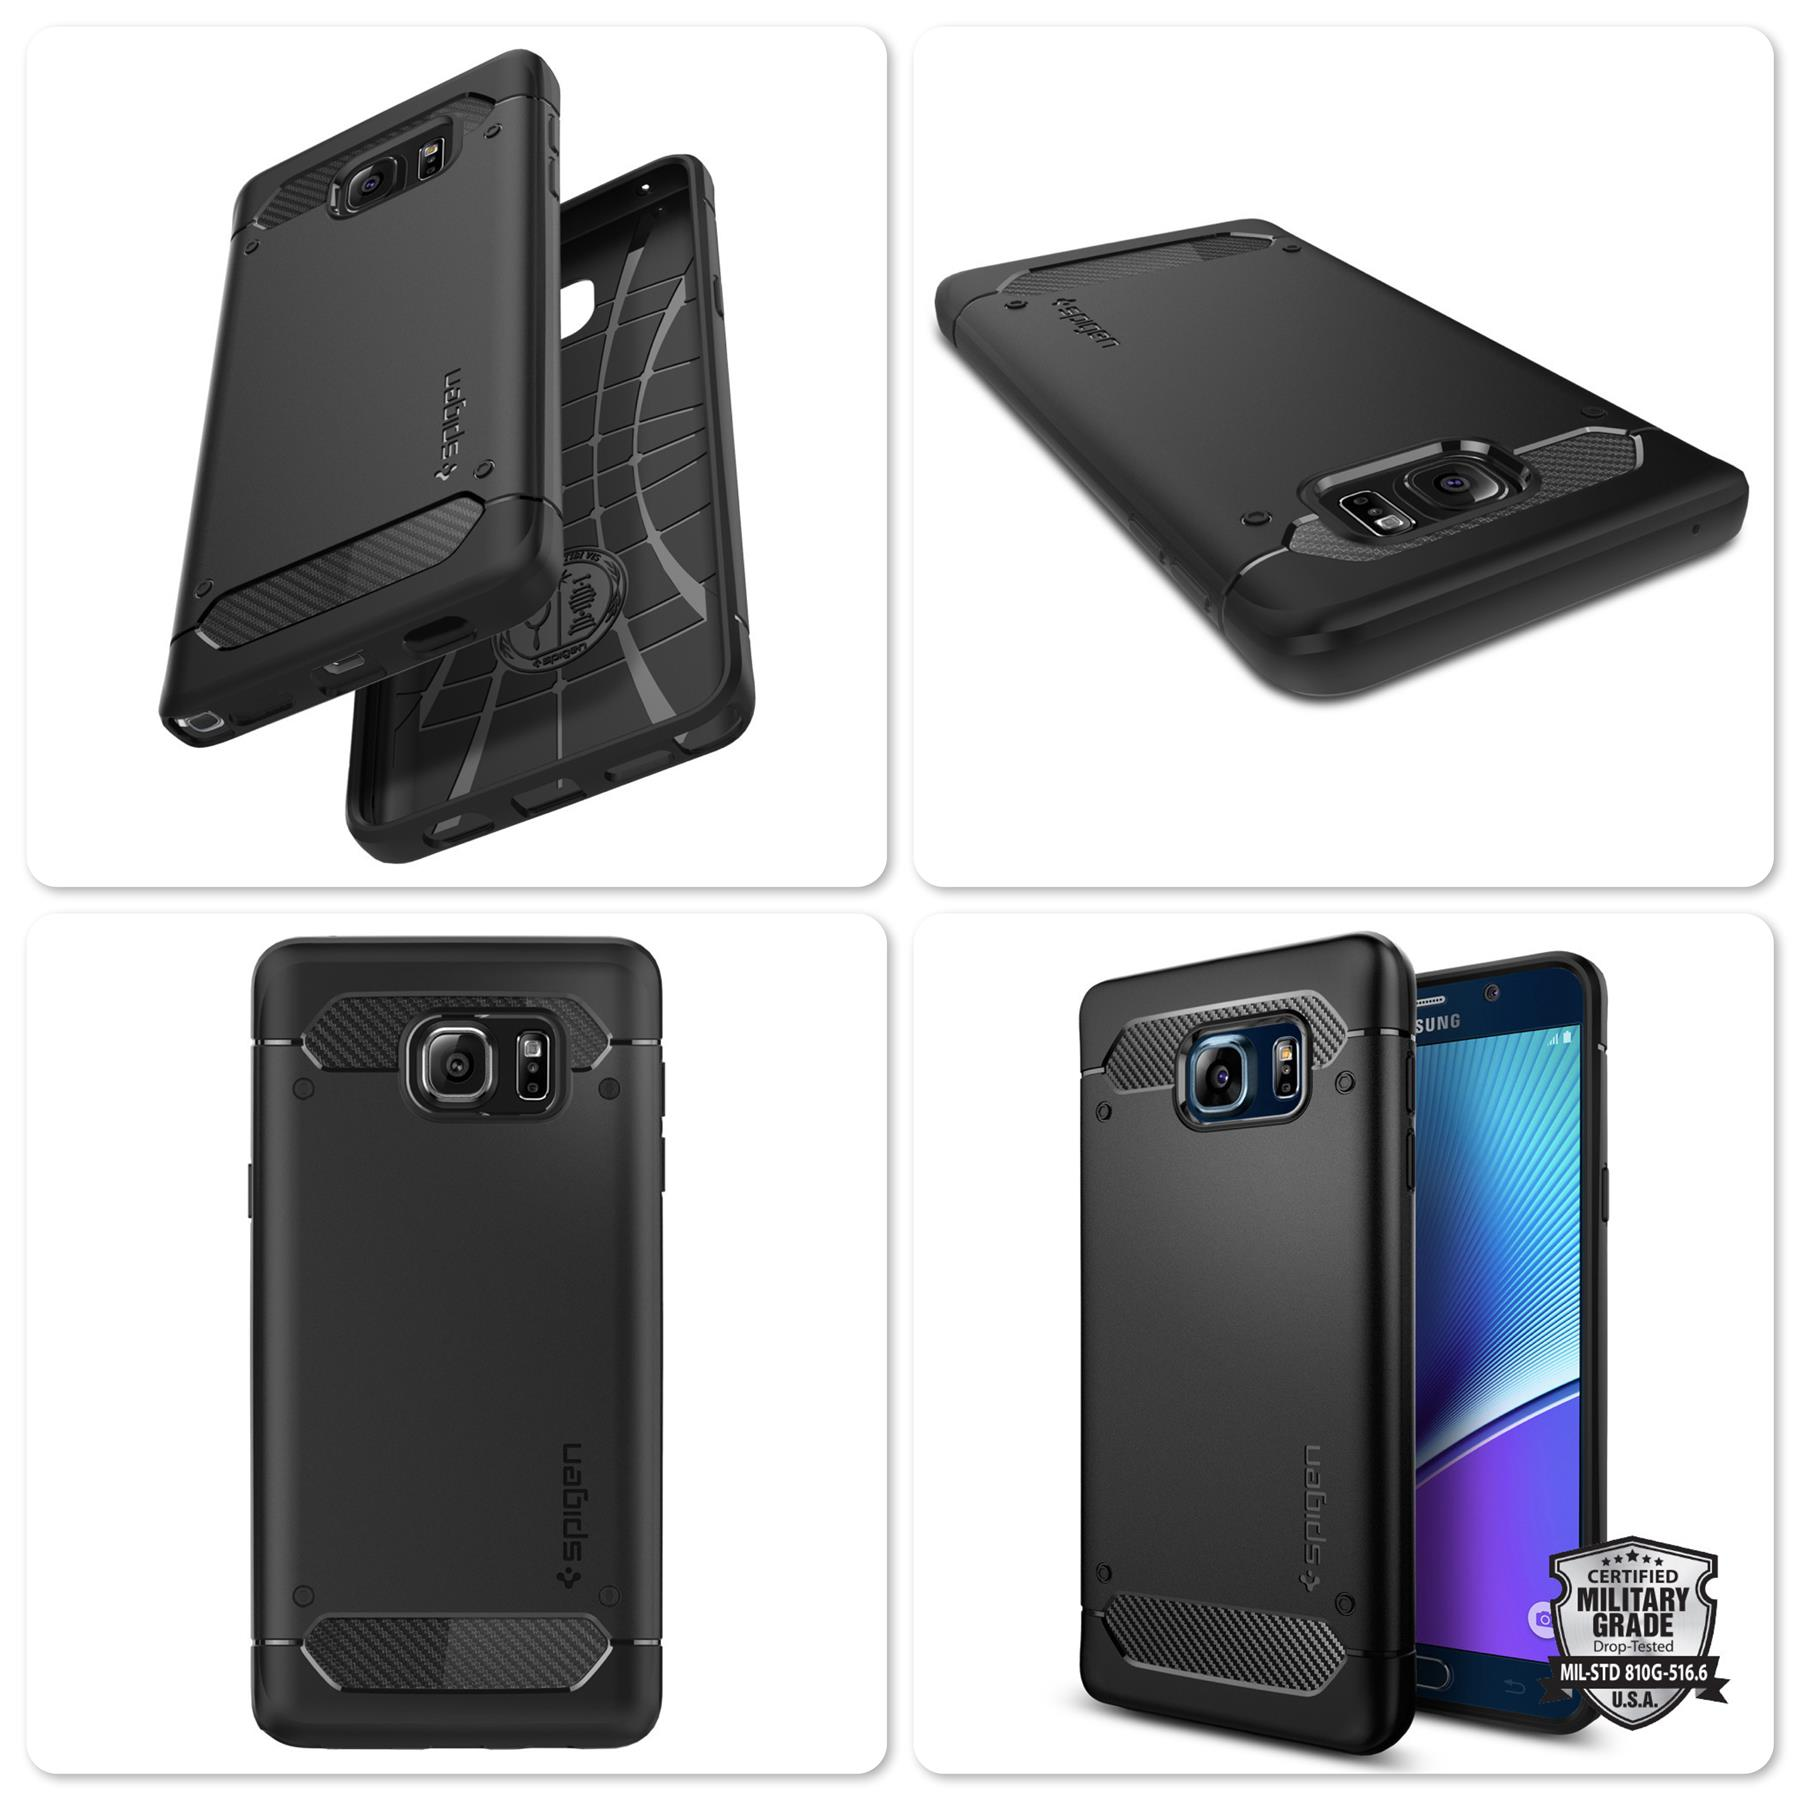 Samsung Galaxy Note 5 Spigen Rugged Armor Series Protective Case